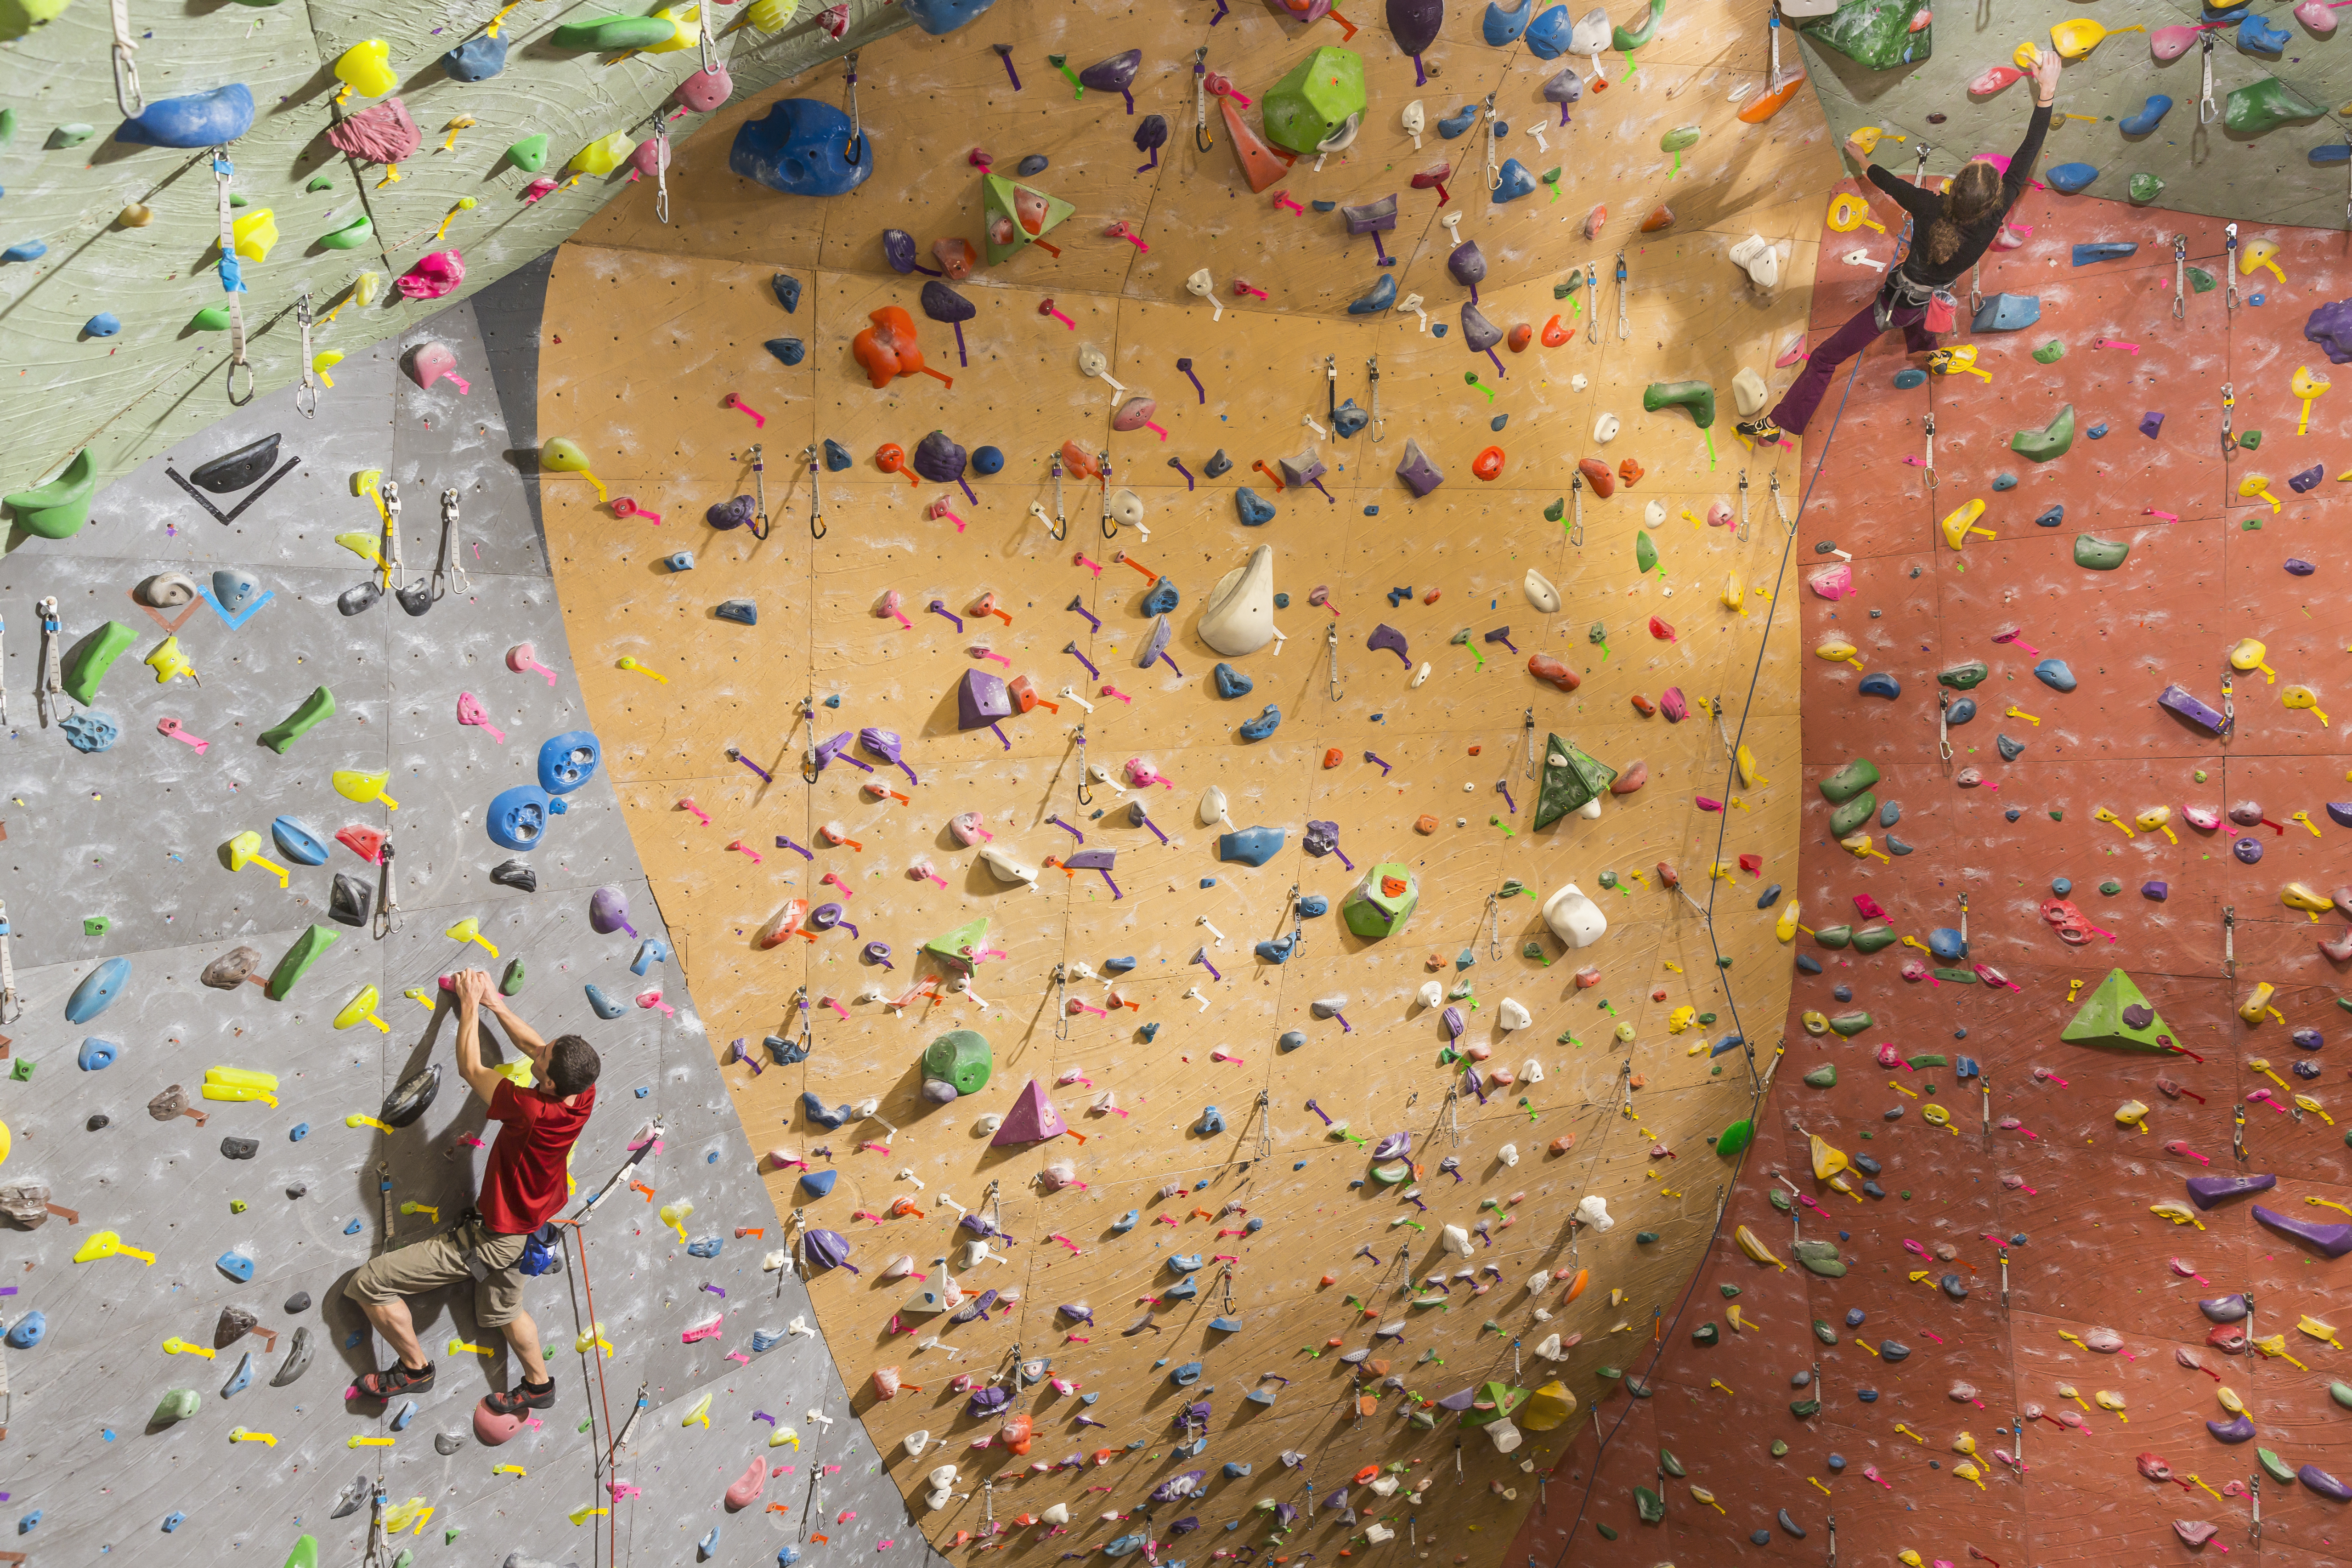 A gray, orange, and red wall take irregular paths upwards and curve onto a ceiling. Each has colorful holds for grabbing. A man is climbing up the gray wall.